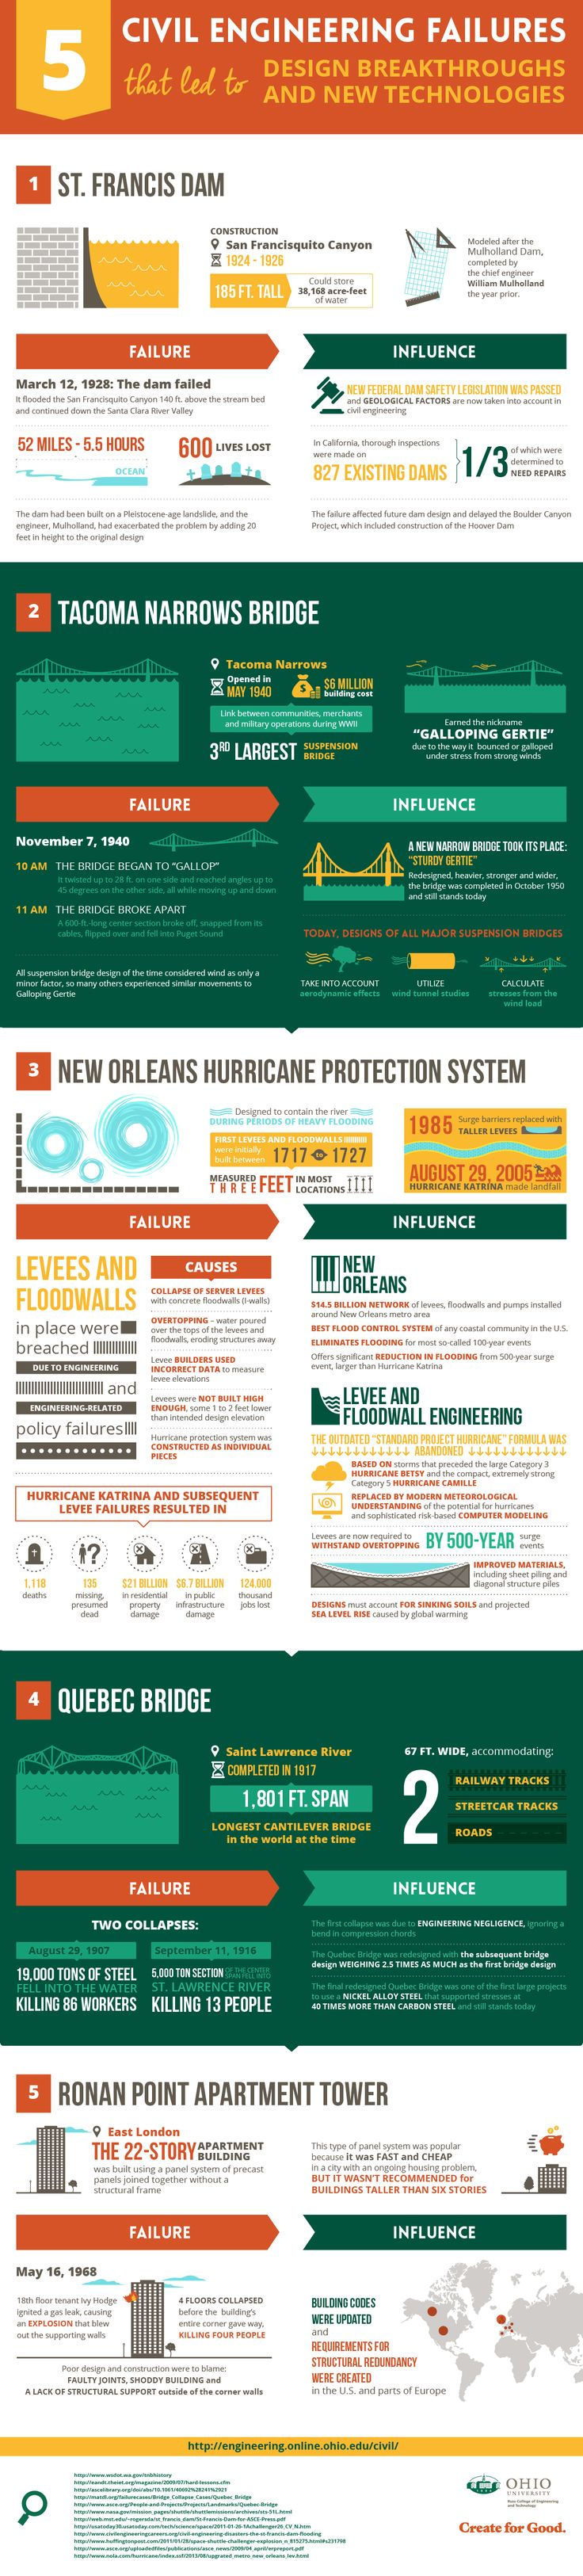 best ideas about civil engineering colleges this infographic shows how hurricane katrina led to genius engineering innovations